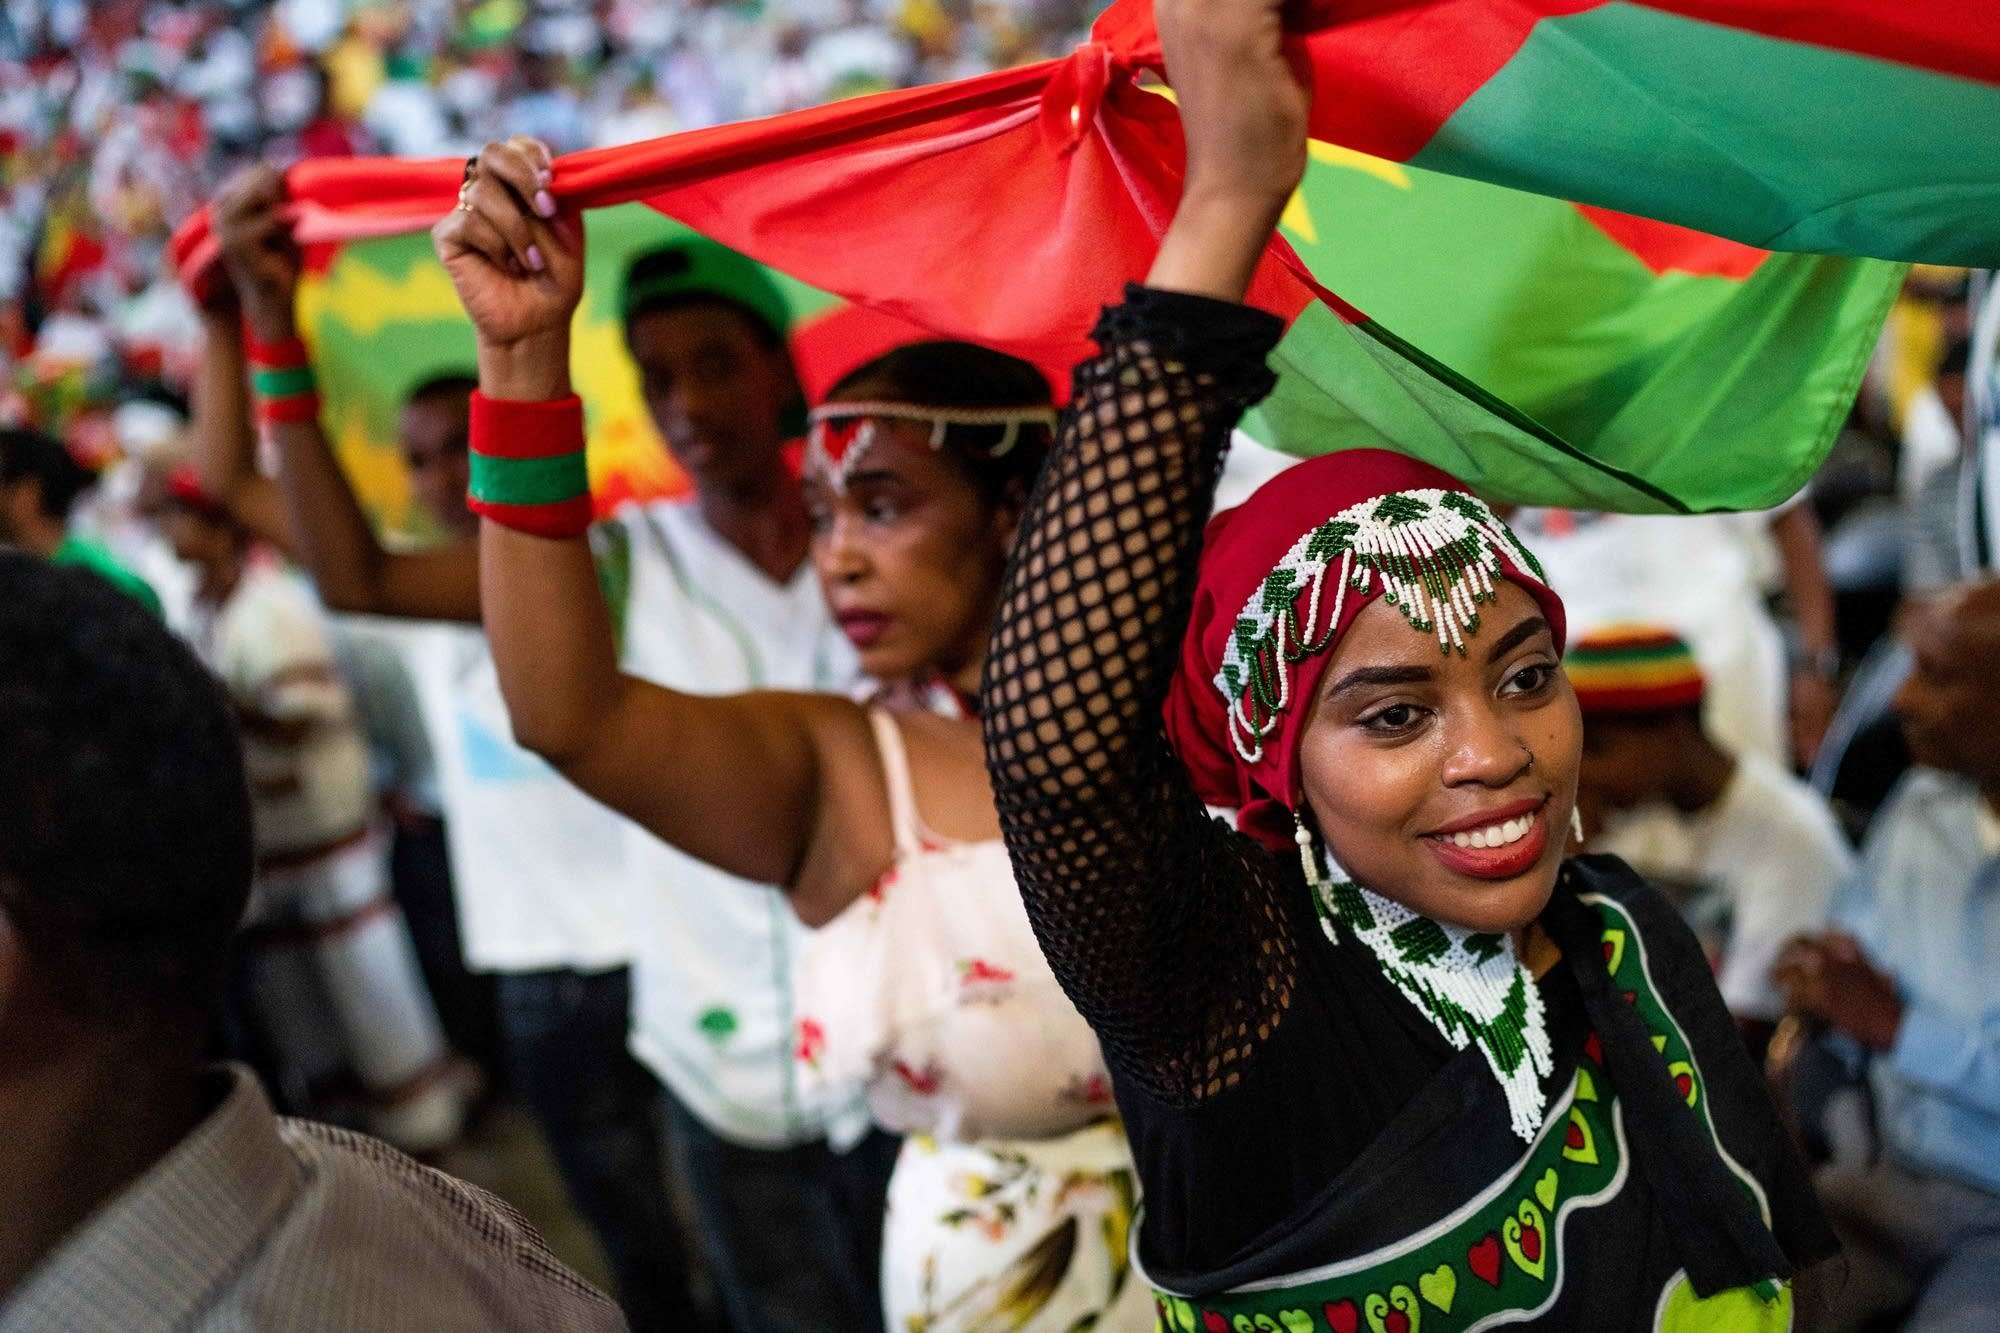 People carry giant Ethiopian and Oromo flags around.